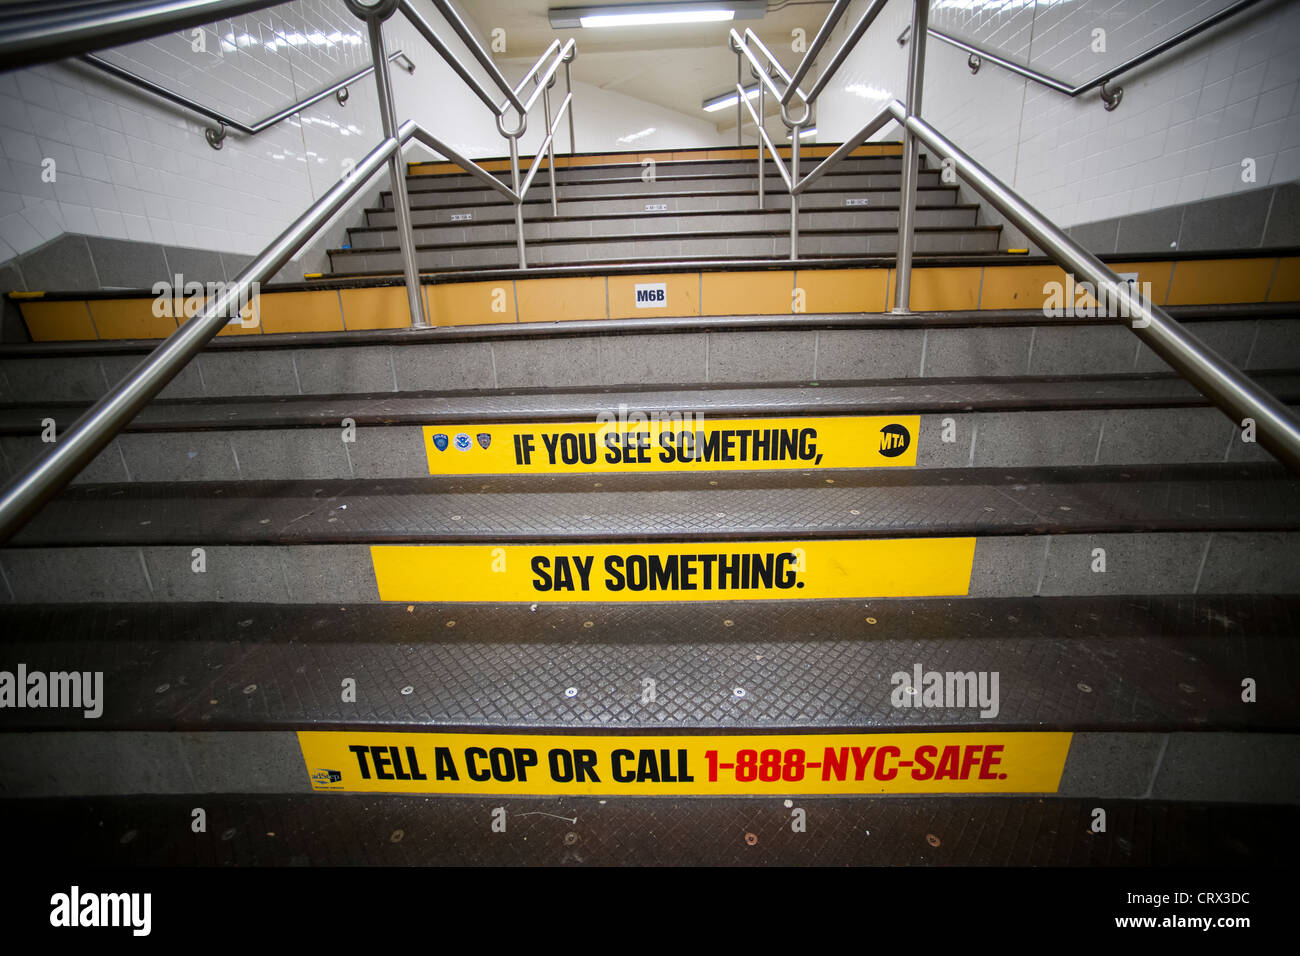 'If You See Something, Say Something', decaled onto the stairs in the New York subway - Stock Image